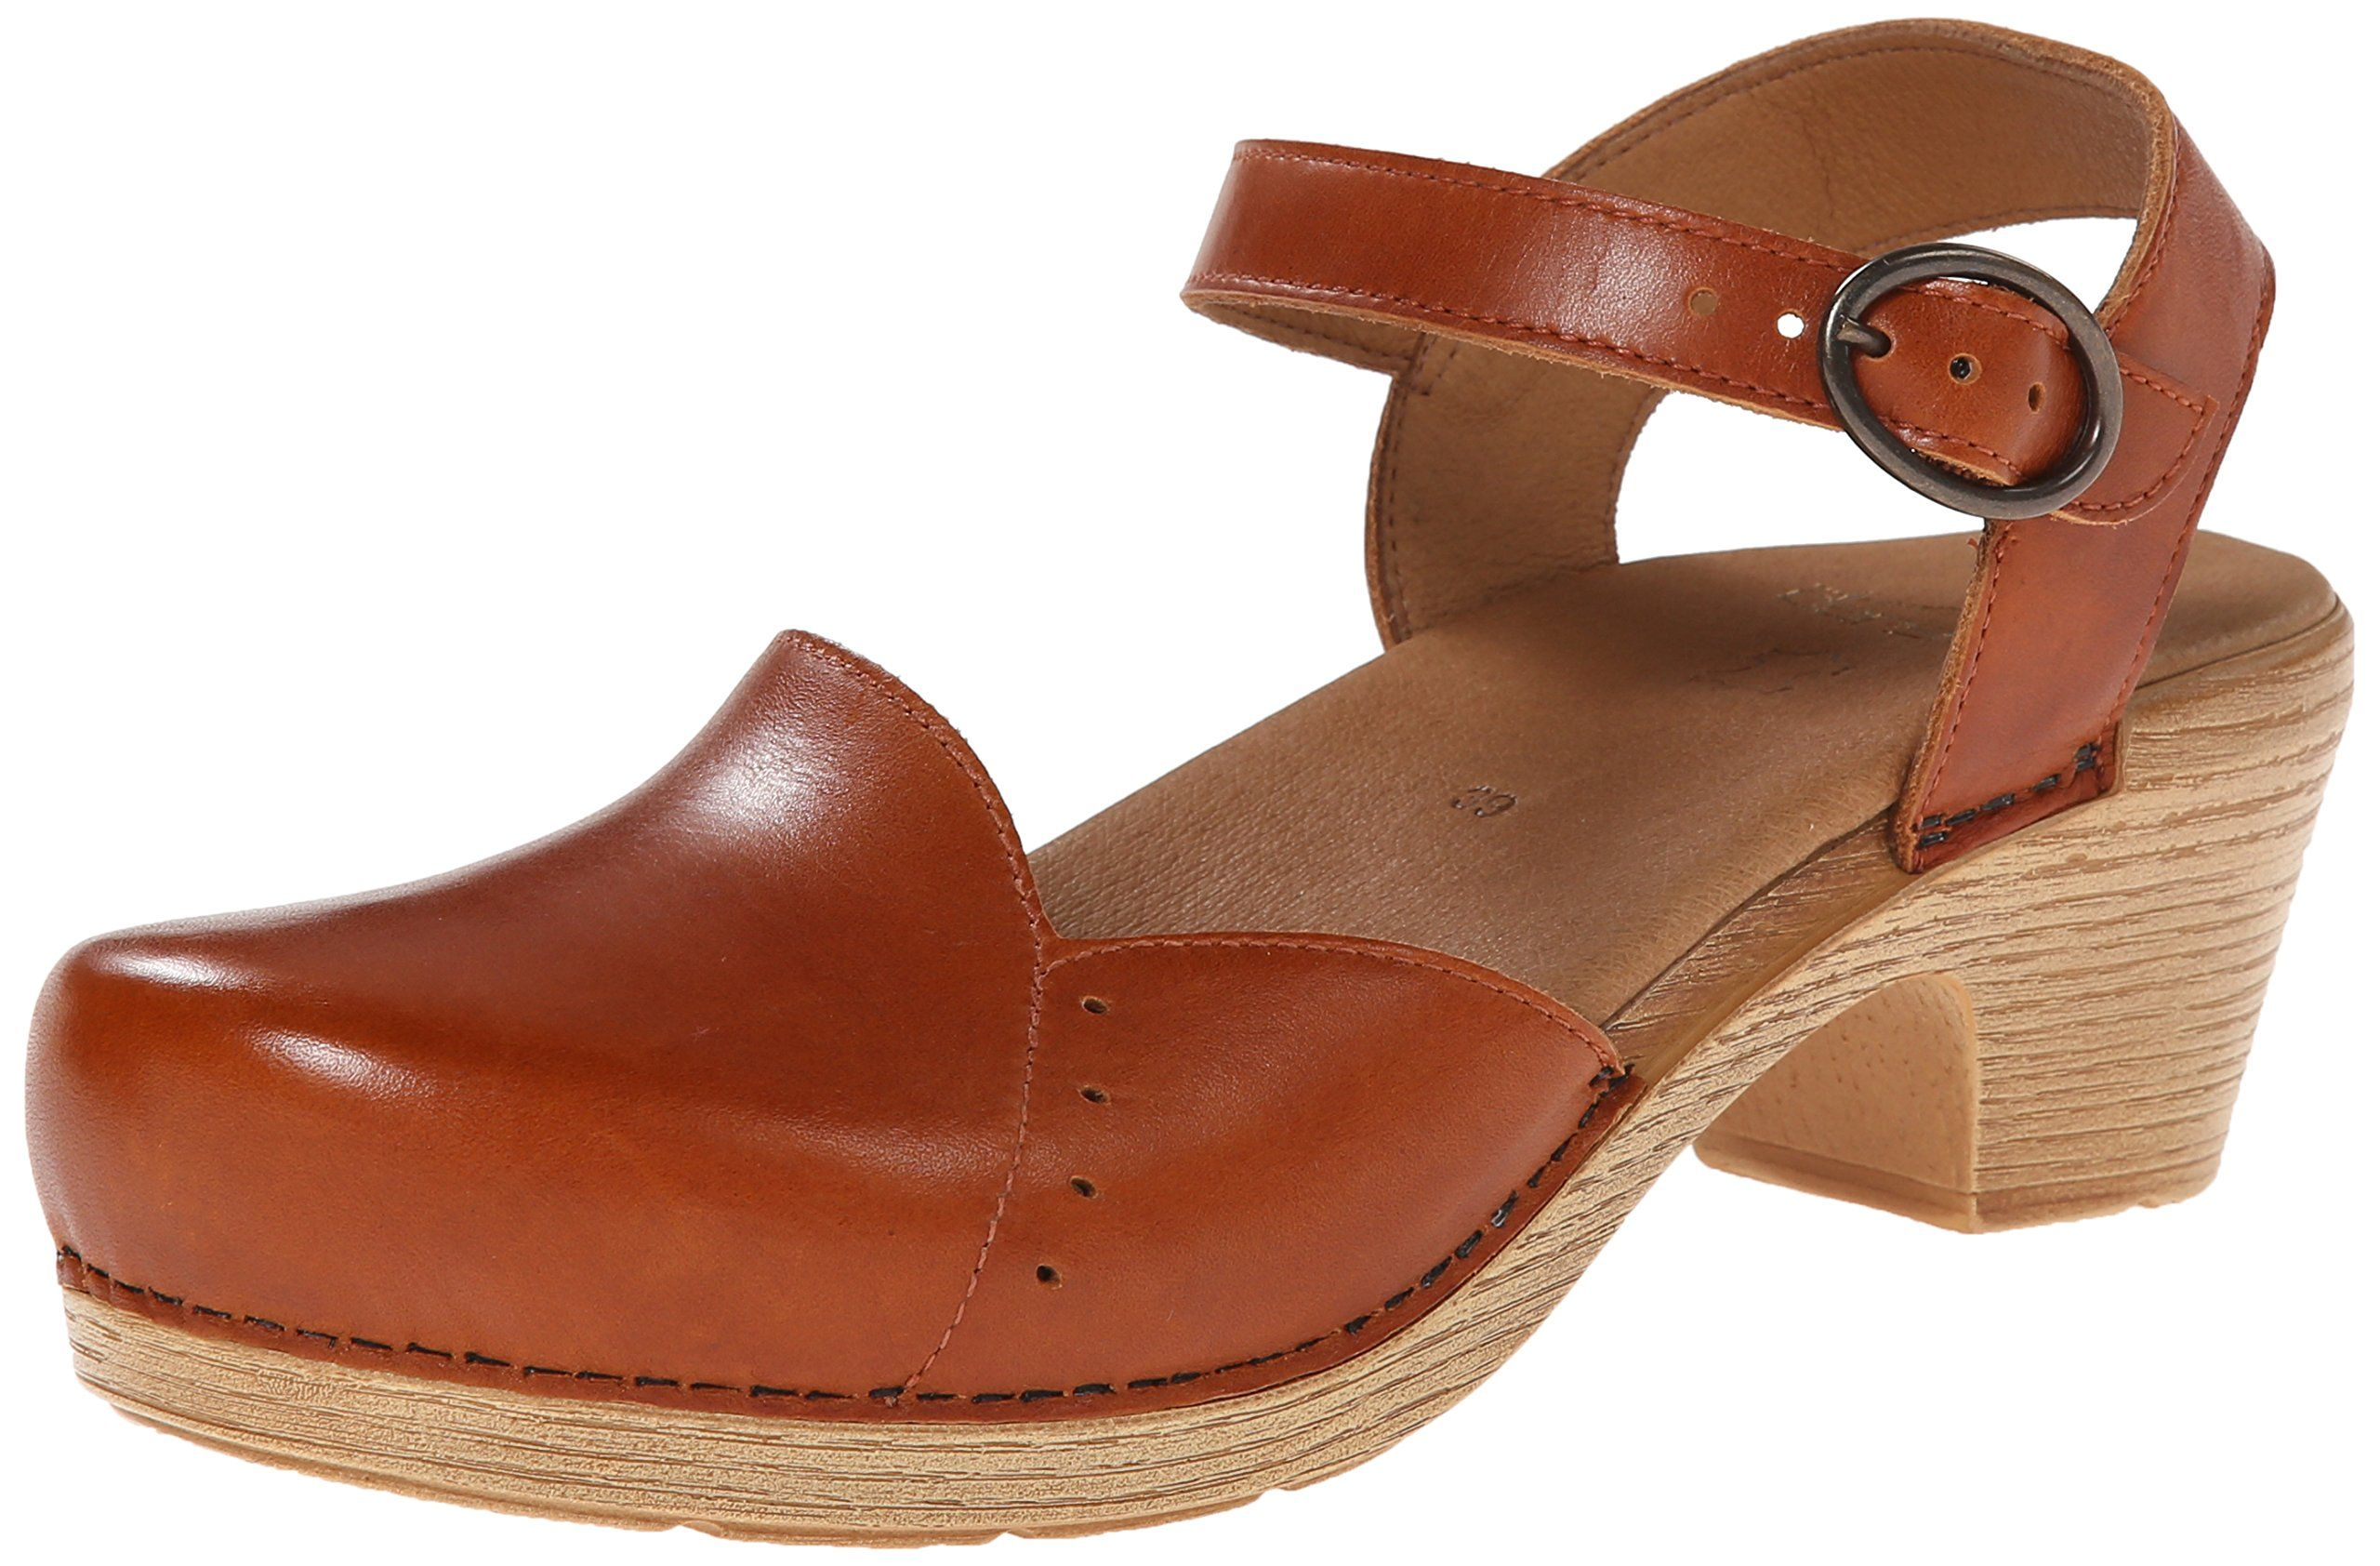 f38f8bf18be Amazon.com  Dansko Women s Maisie Dress Sandal  Shoes